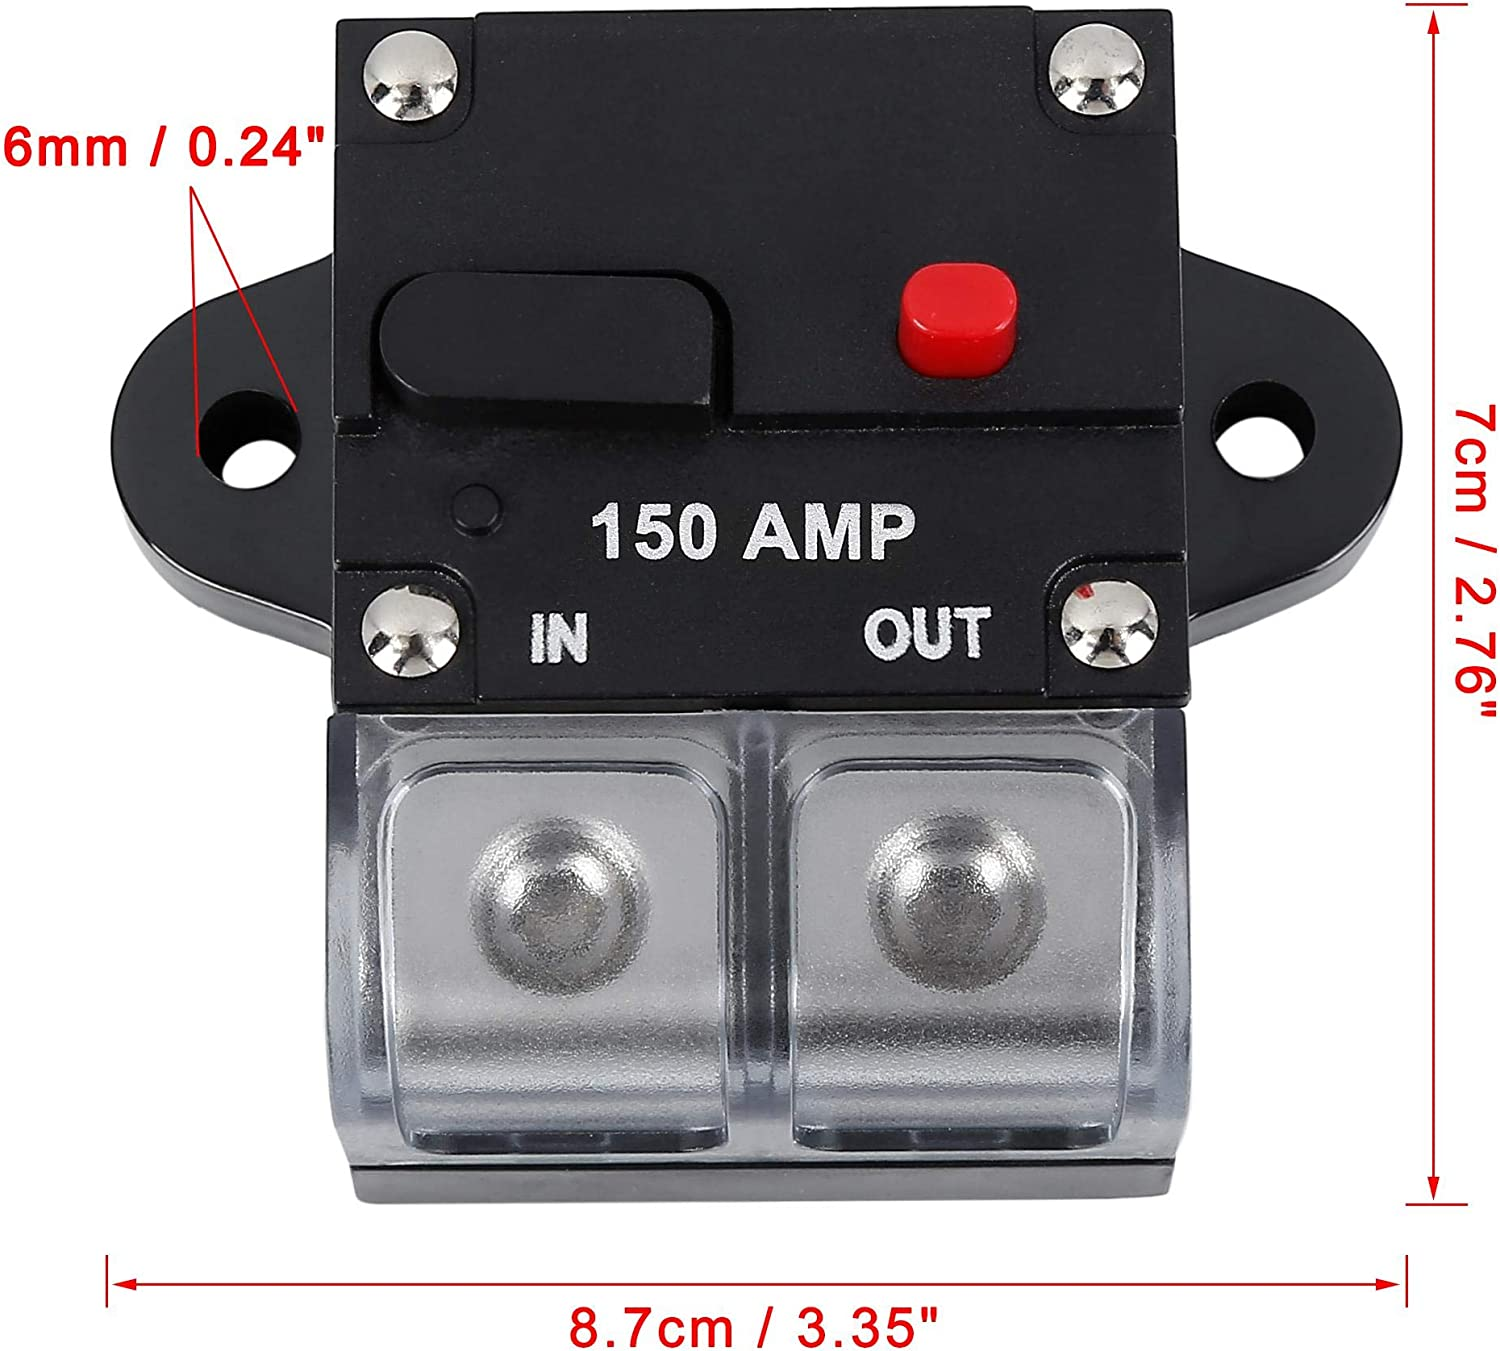 X AUTOHAUX Fuse Holders Inverter Circuit Breaker Inline Protector 150A Black Red Button for Car Vehicle